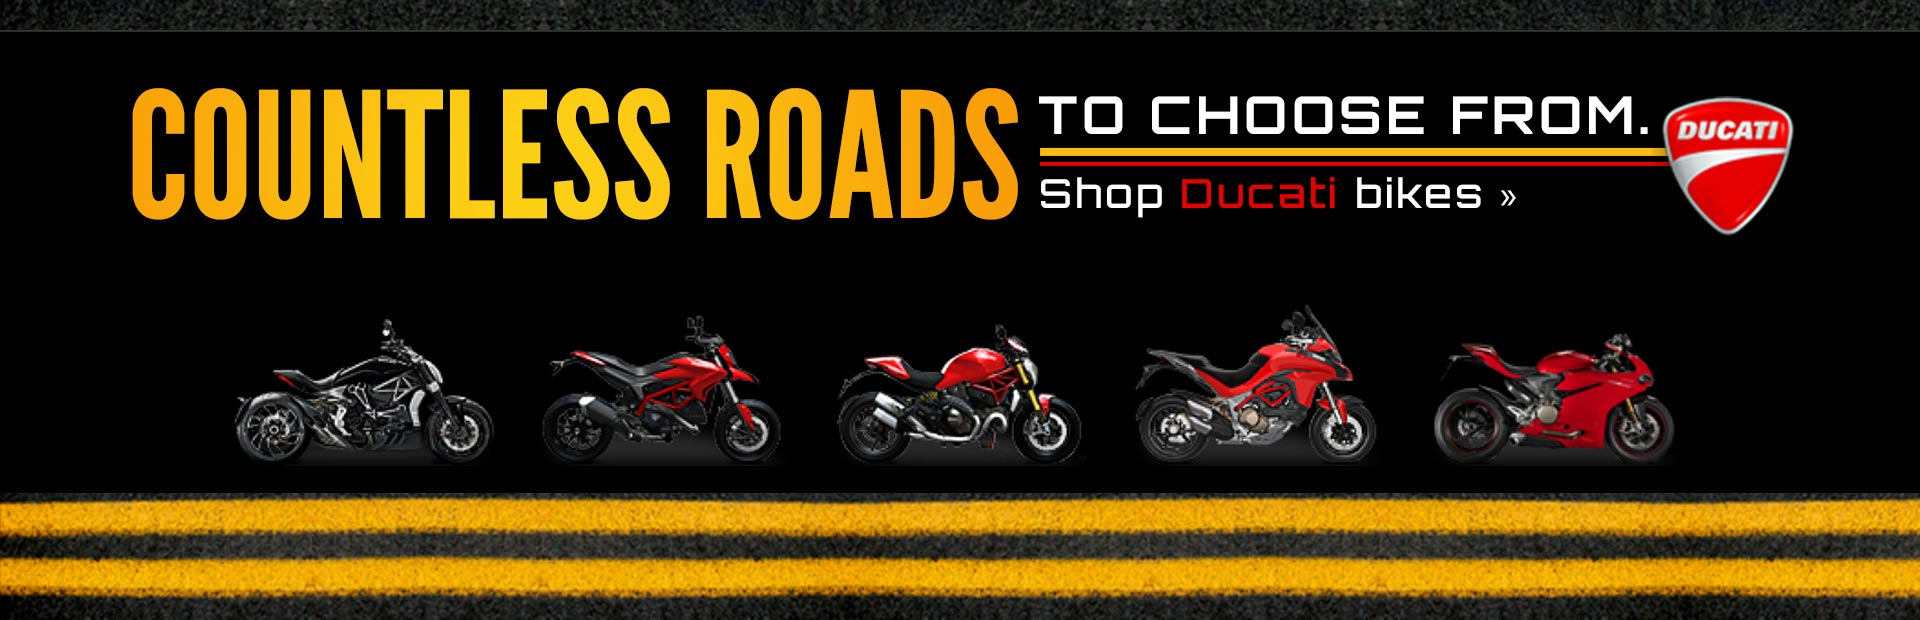 Click here to shop Ducati bikes!